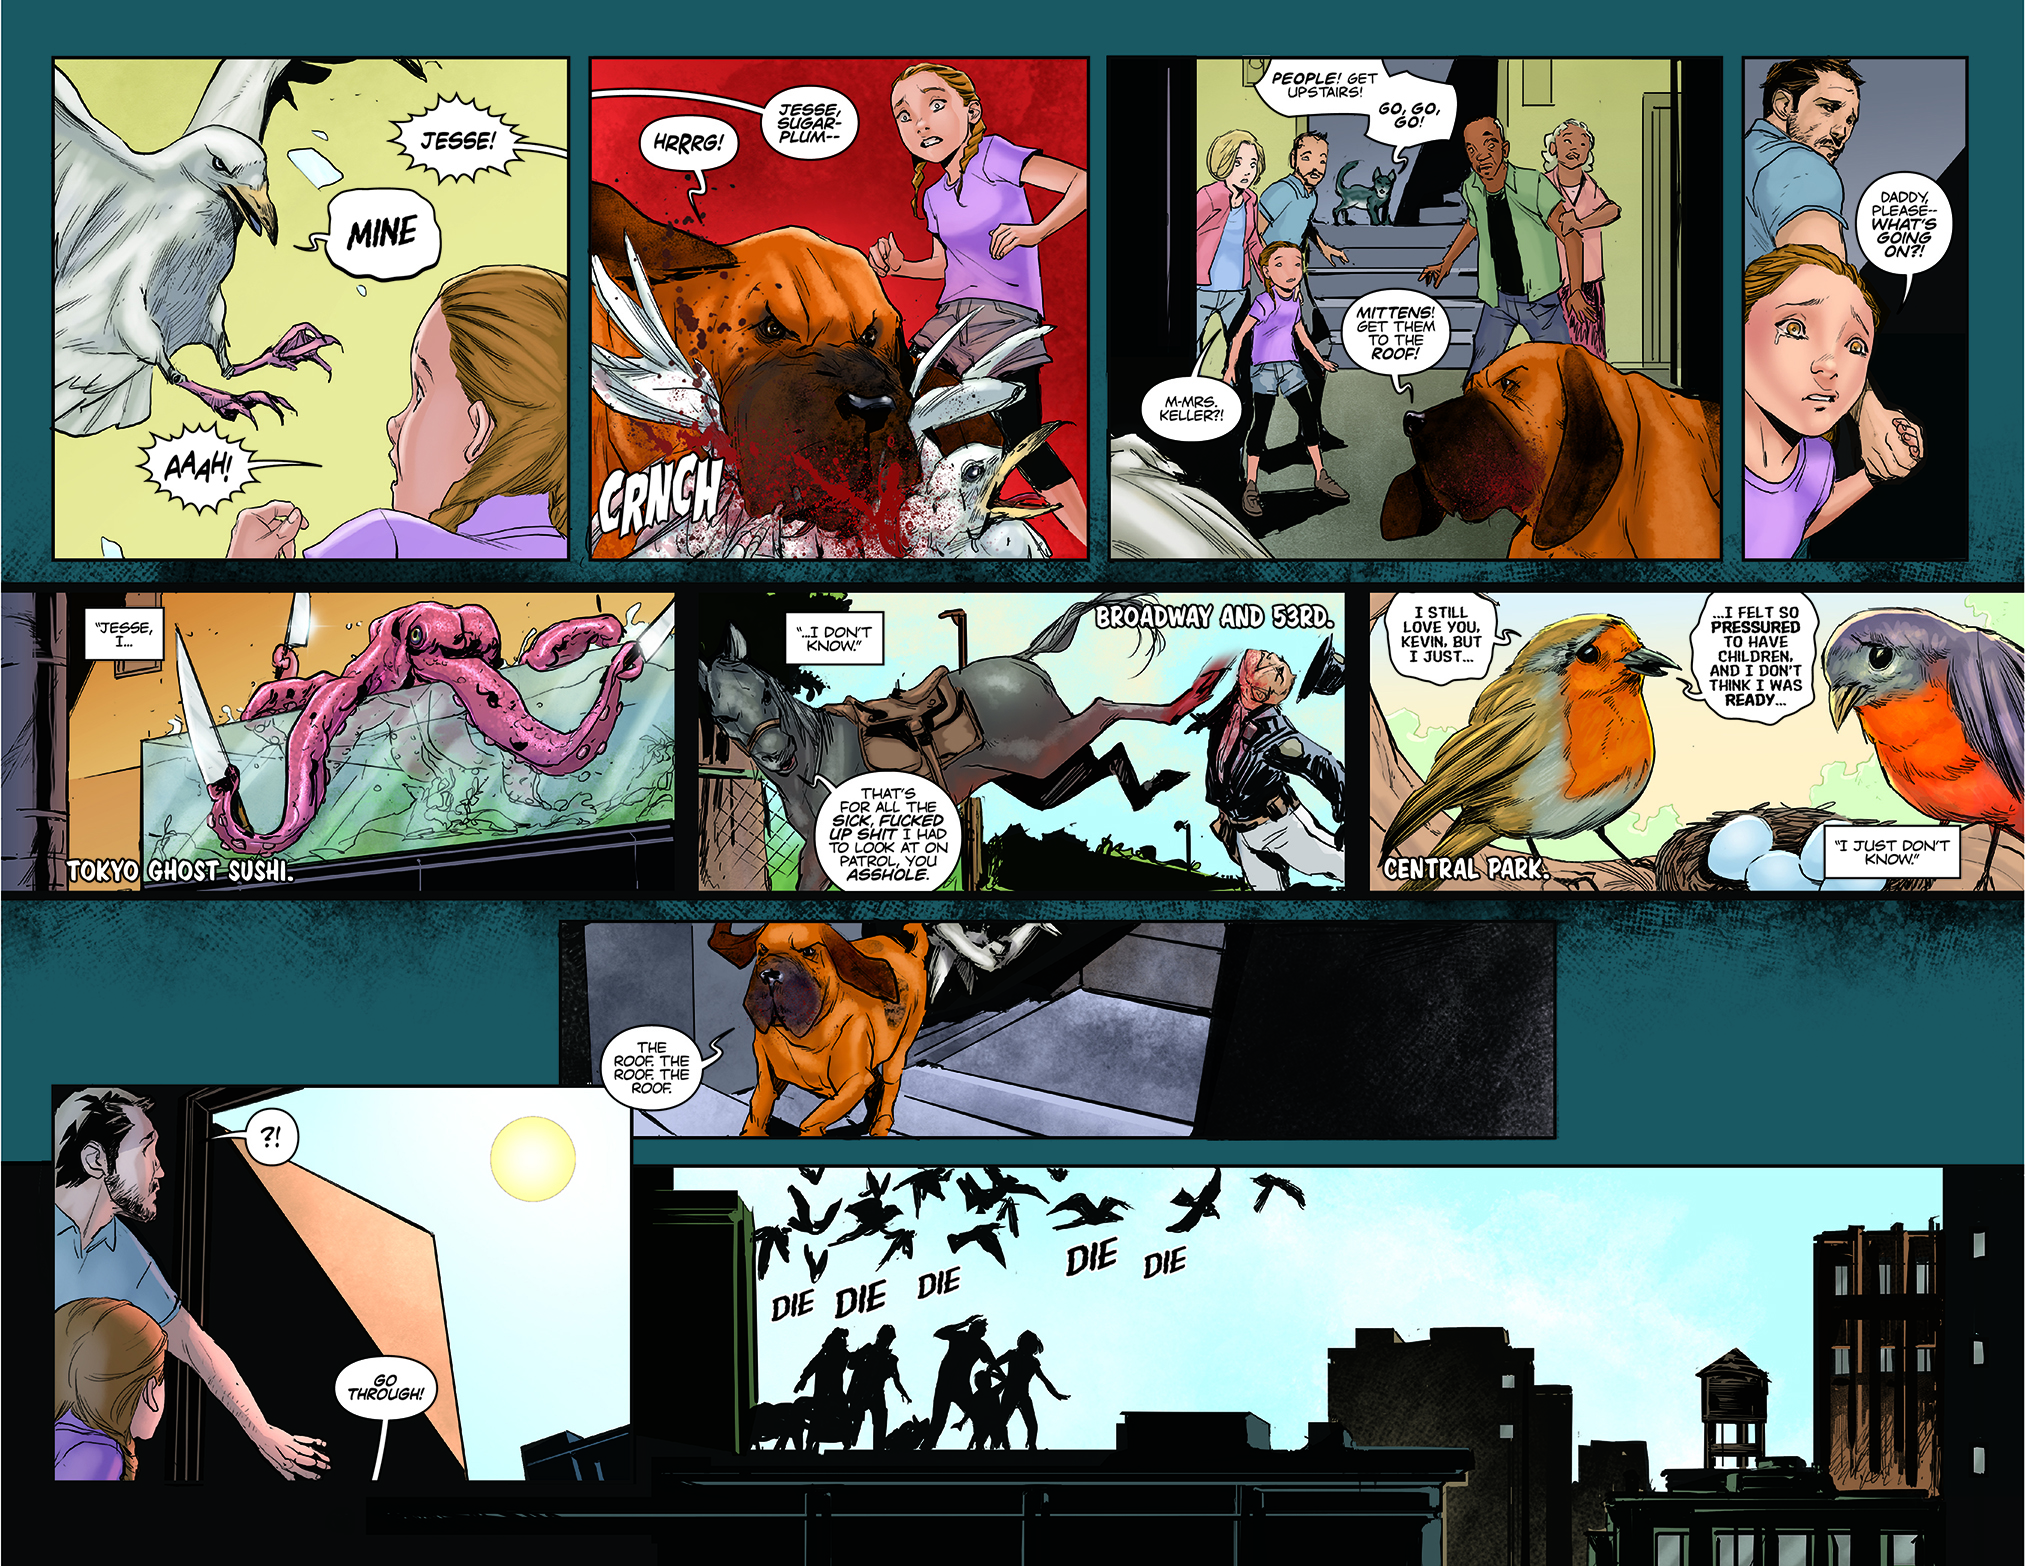 ANIMOSITY #1 PAGES 12-13 AFTERSHOCK COMICS